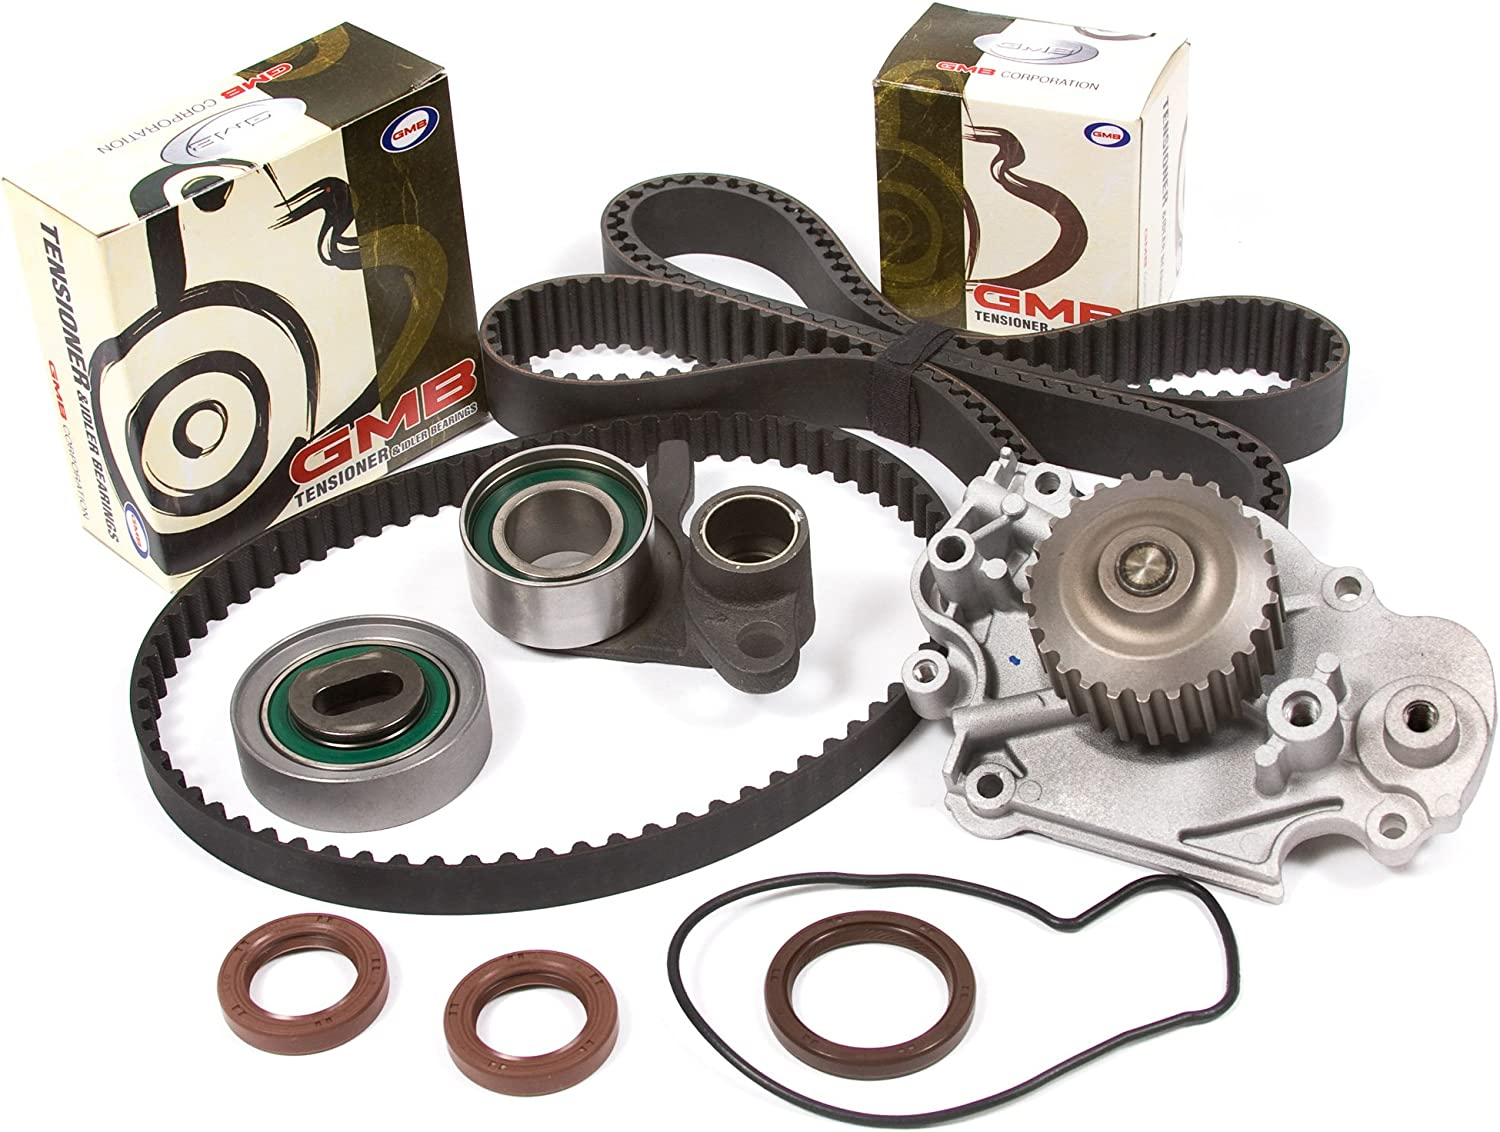 Evergreen TBK226WPT Fits 93-01 Honda Prelude VTEC 2.2L H22A1 H22A4 Timing Belt Kit Water Pump